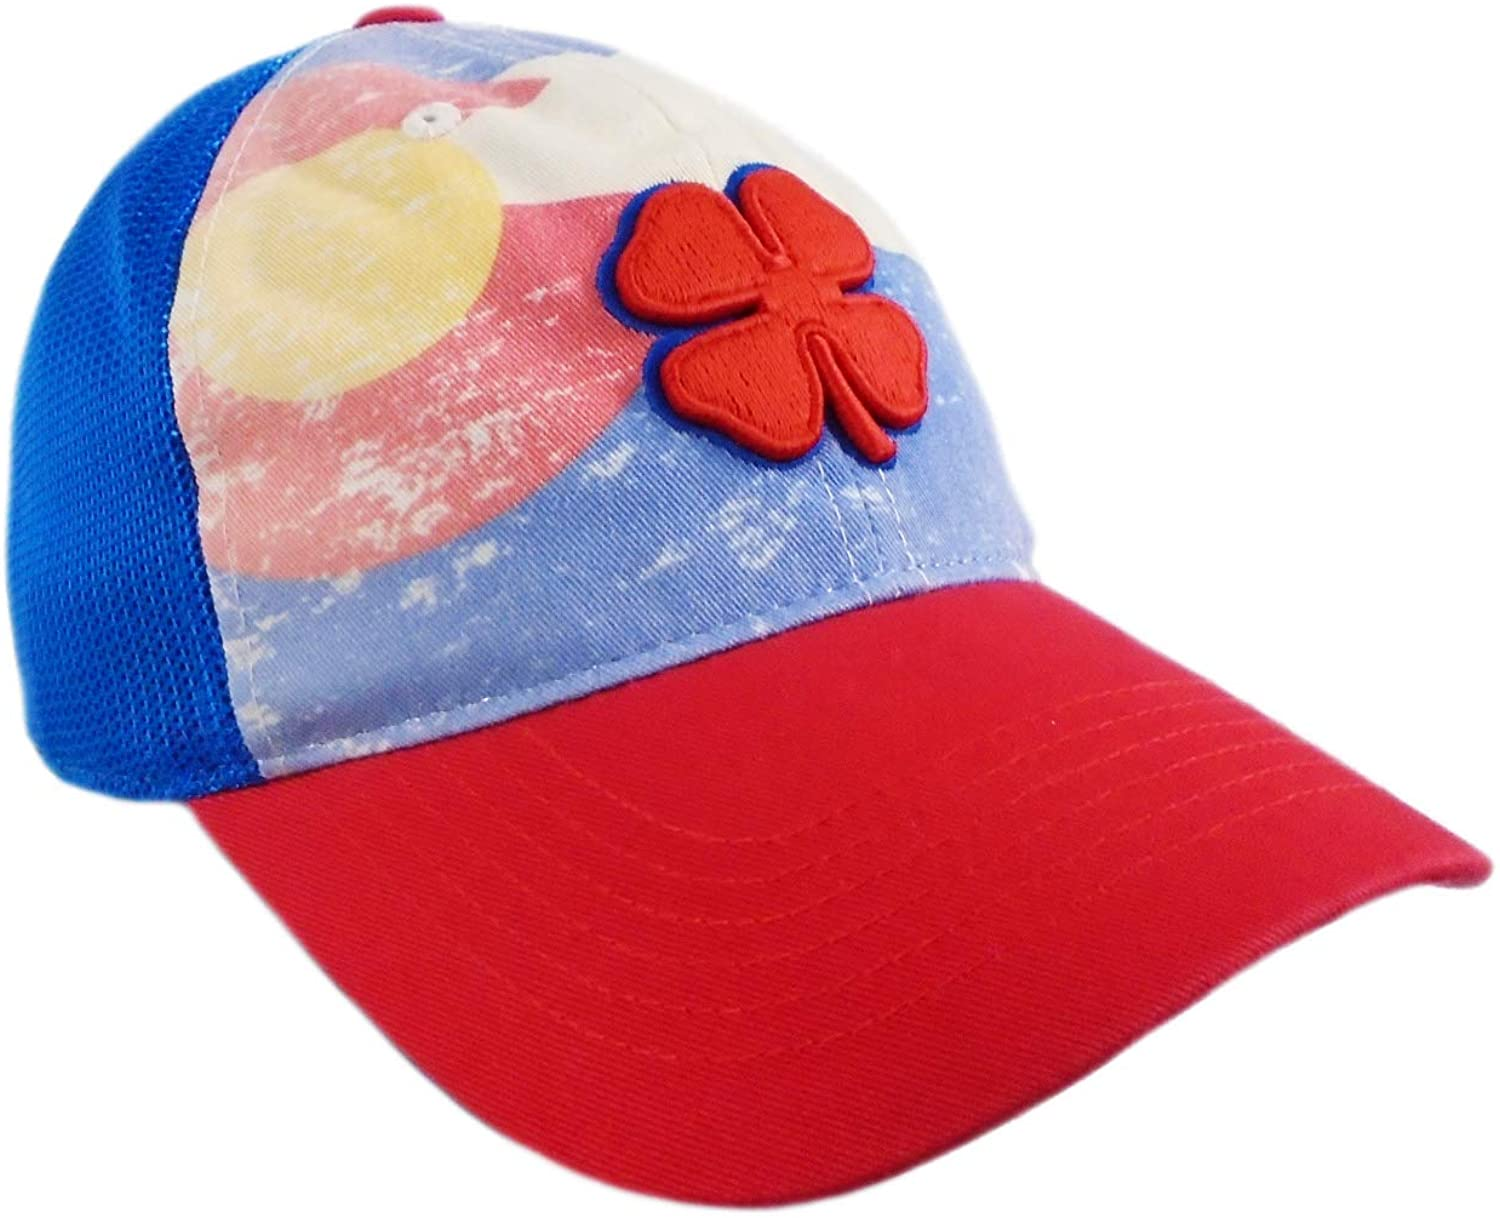 Black Clover New Vintage BC Colorado Blue/Red/Yellow Fitted S/M Golf Hat/Cap